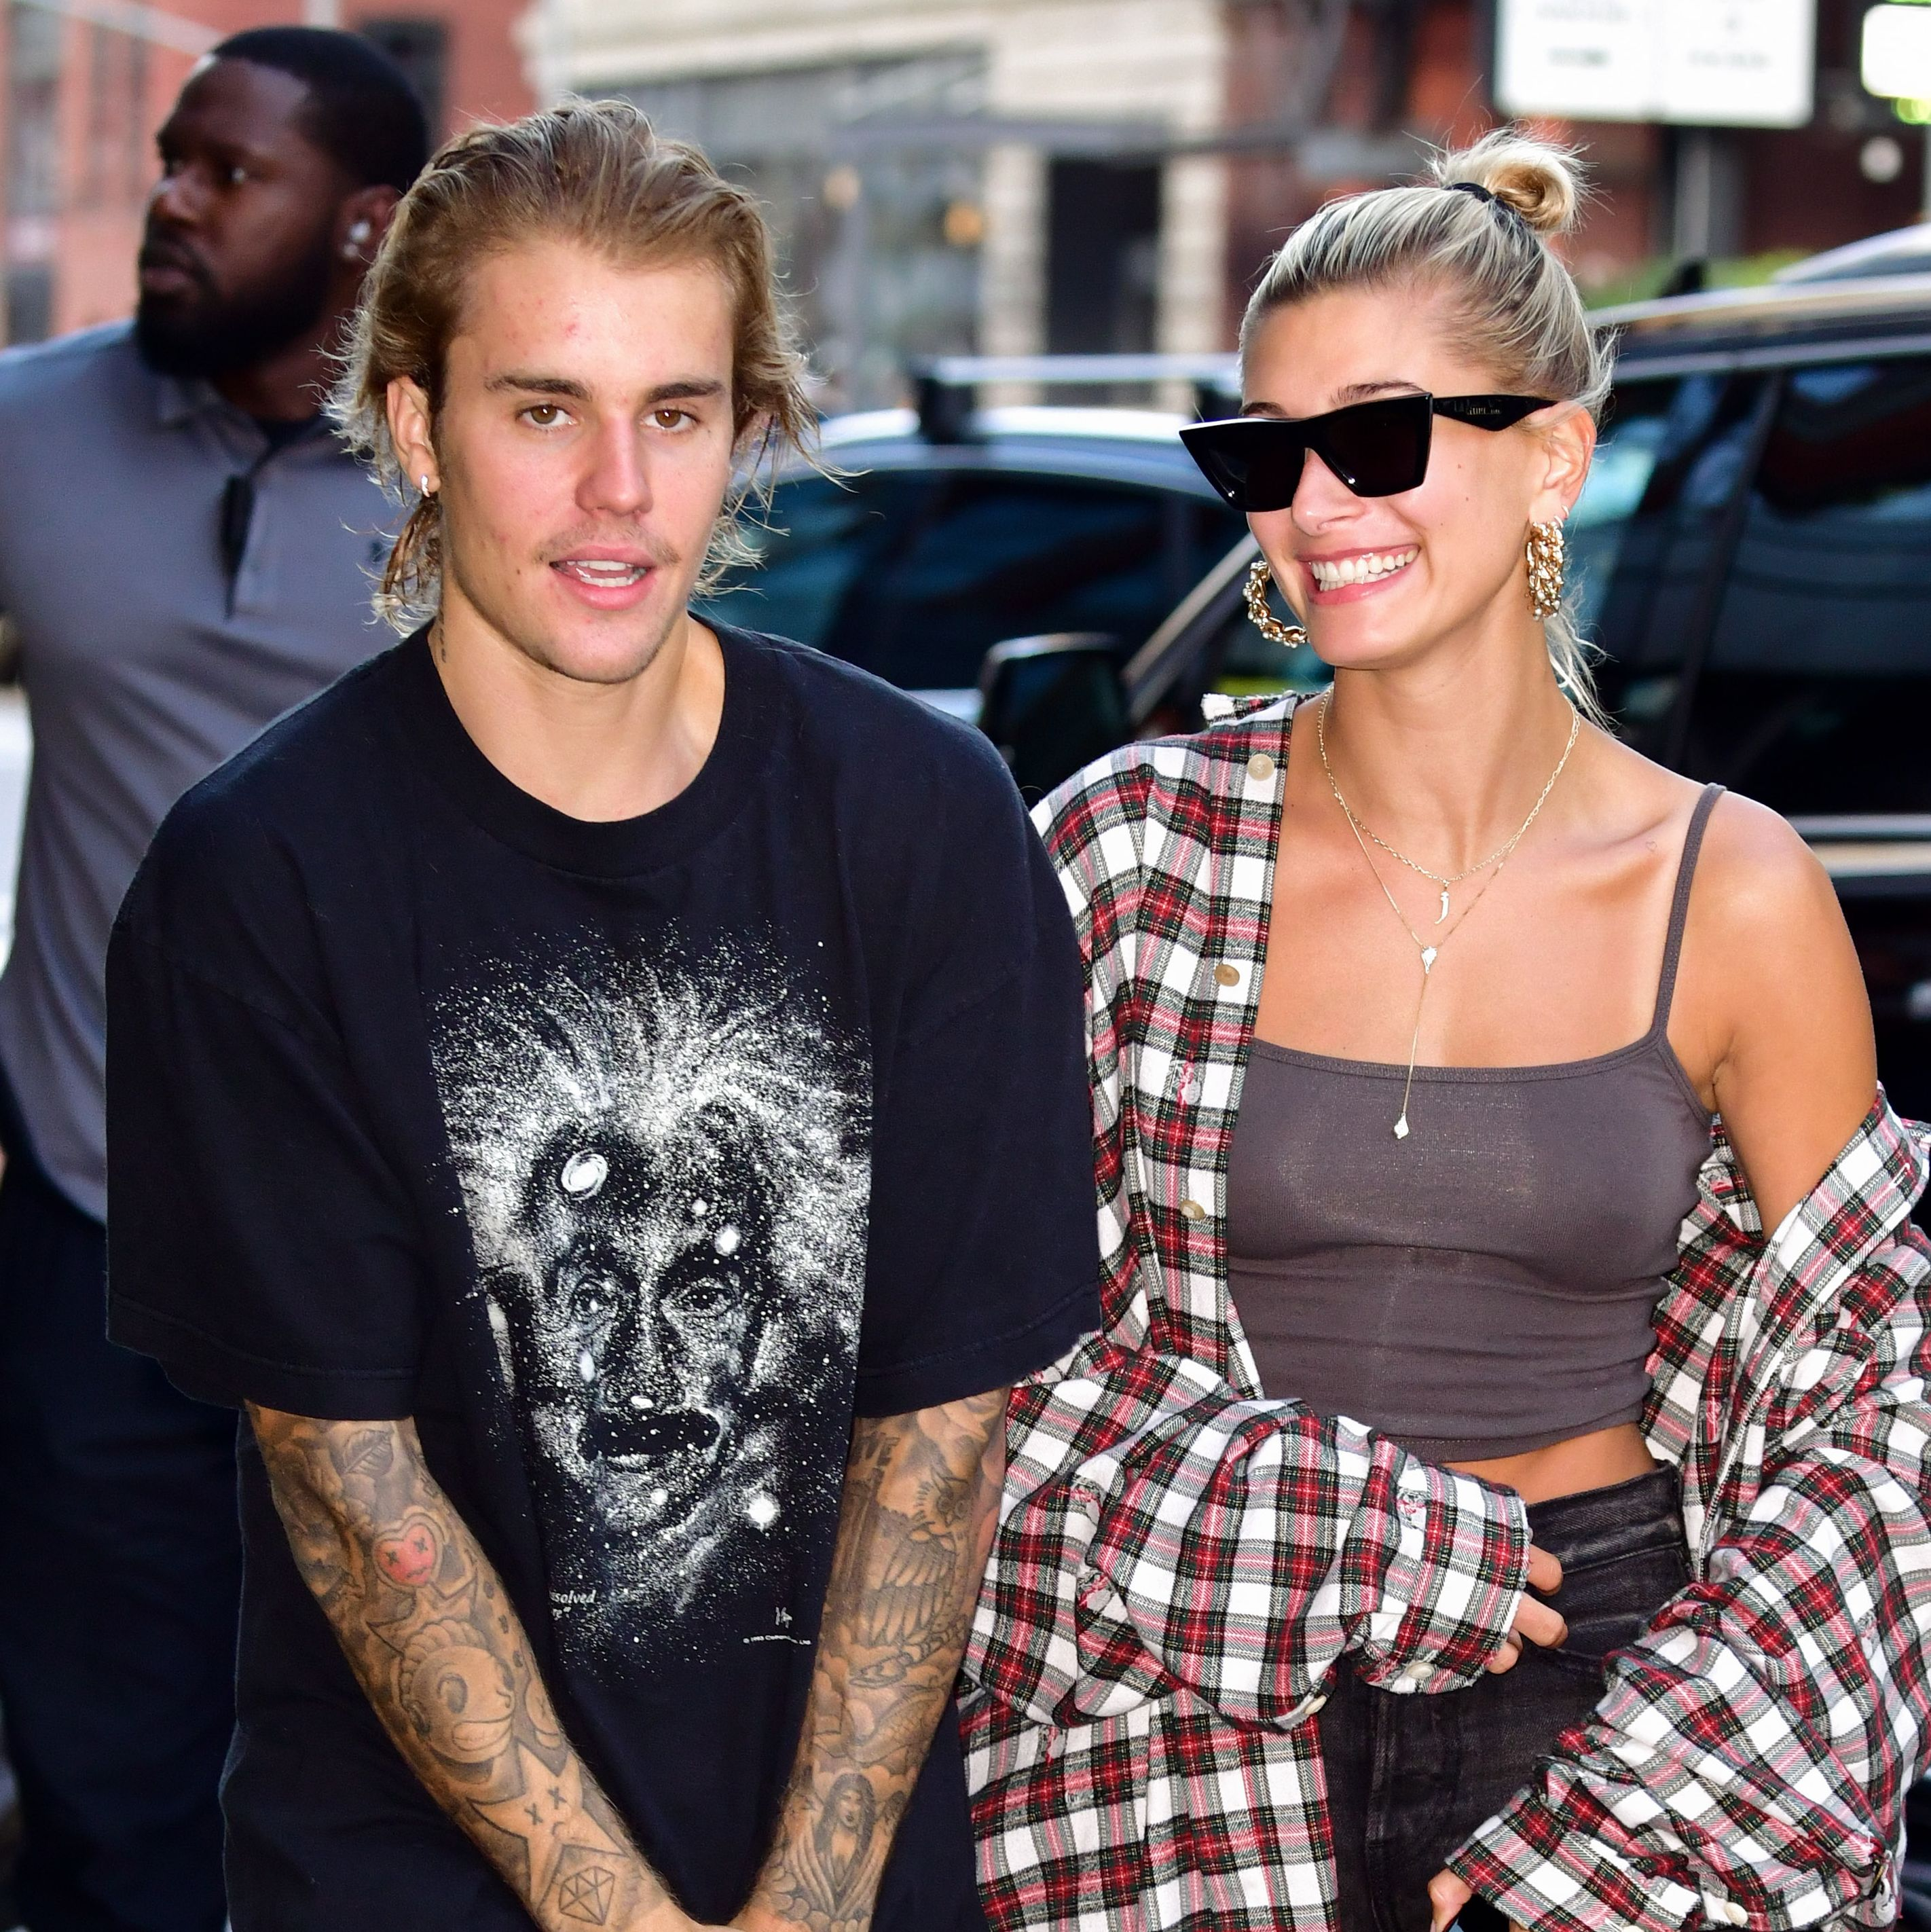 Justin Bieber Just Bought a $8.5 Million Beverly Hills House for Hailey Baldwin